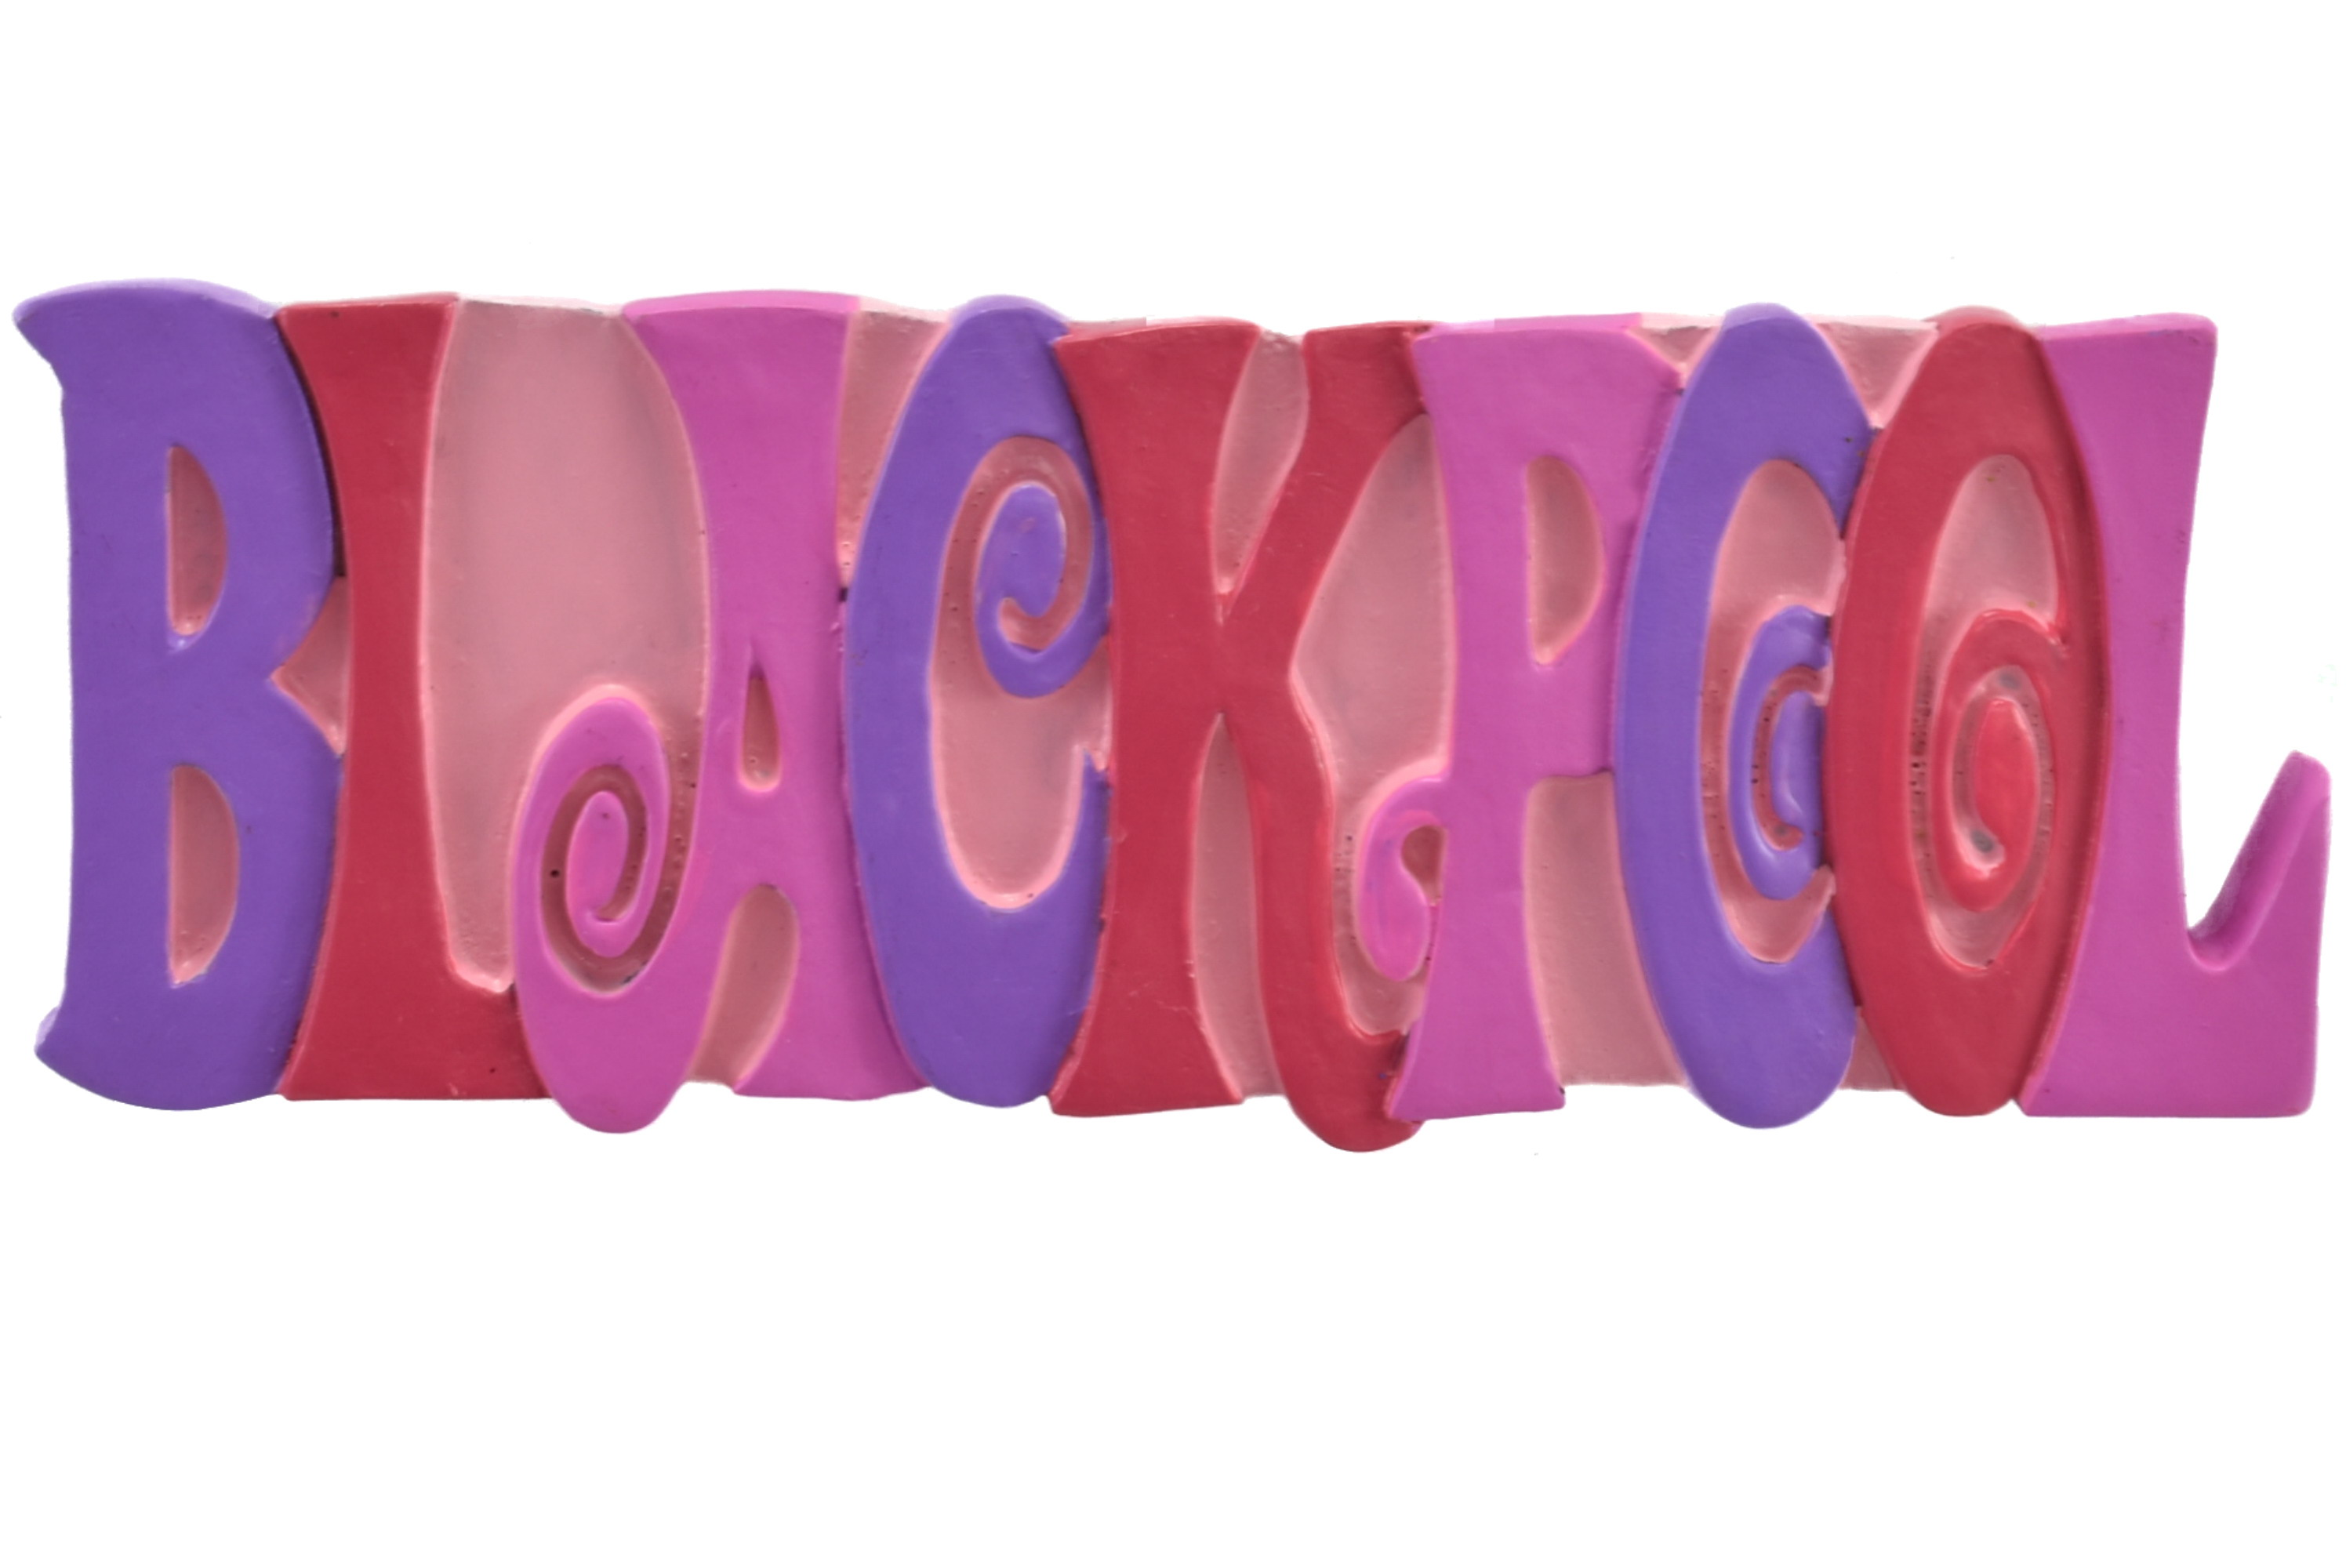 Blackpool Pink Letters Resin Magnet